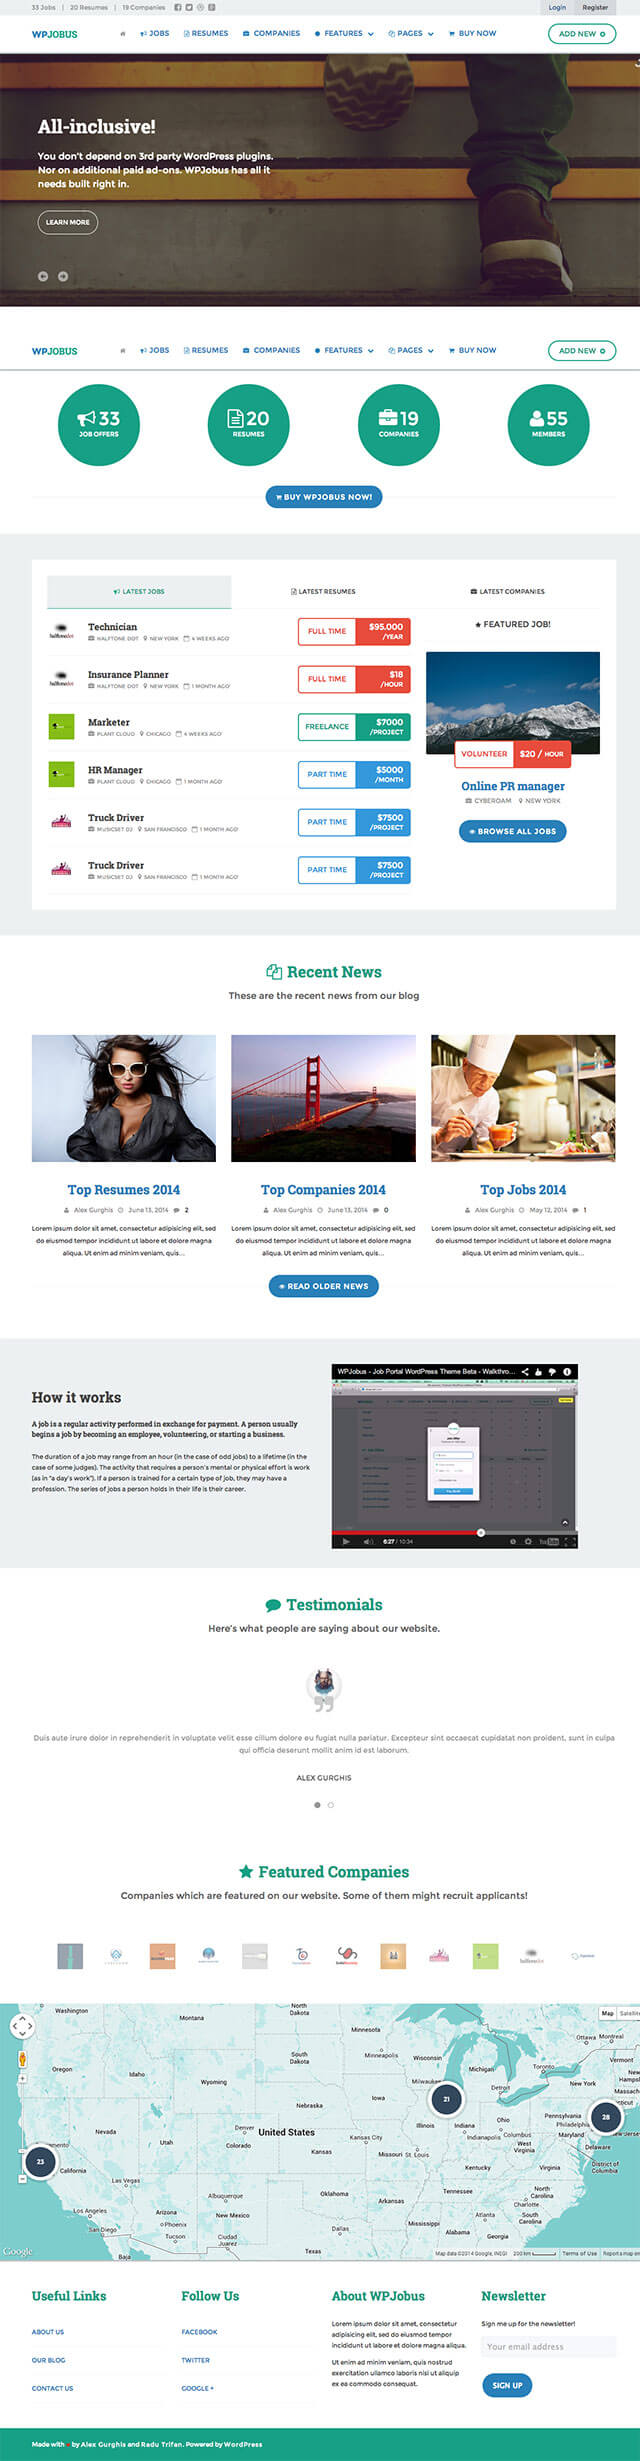 12 best job board wordpress themes 2017 useful blogging wpjobus has been designed to make it as easy as possible to build a job board portal website wordpress however this theme can also be setup to